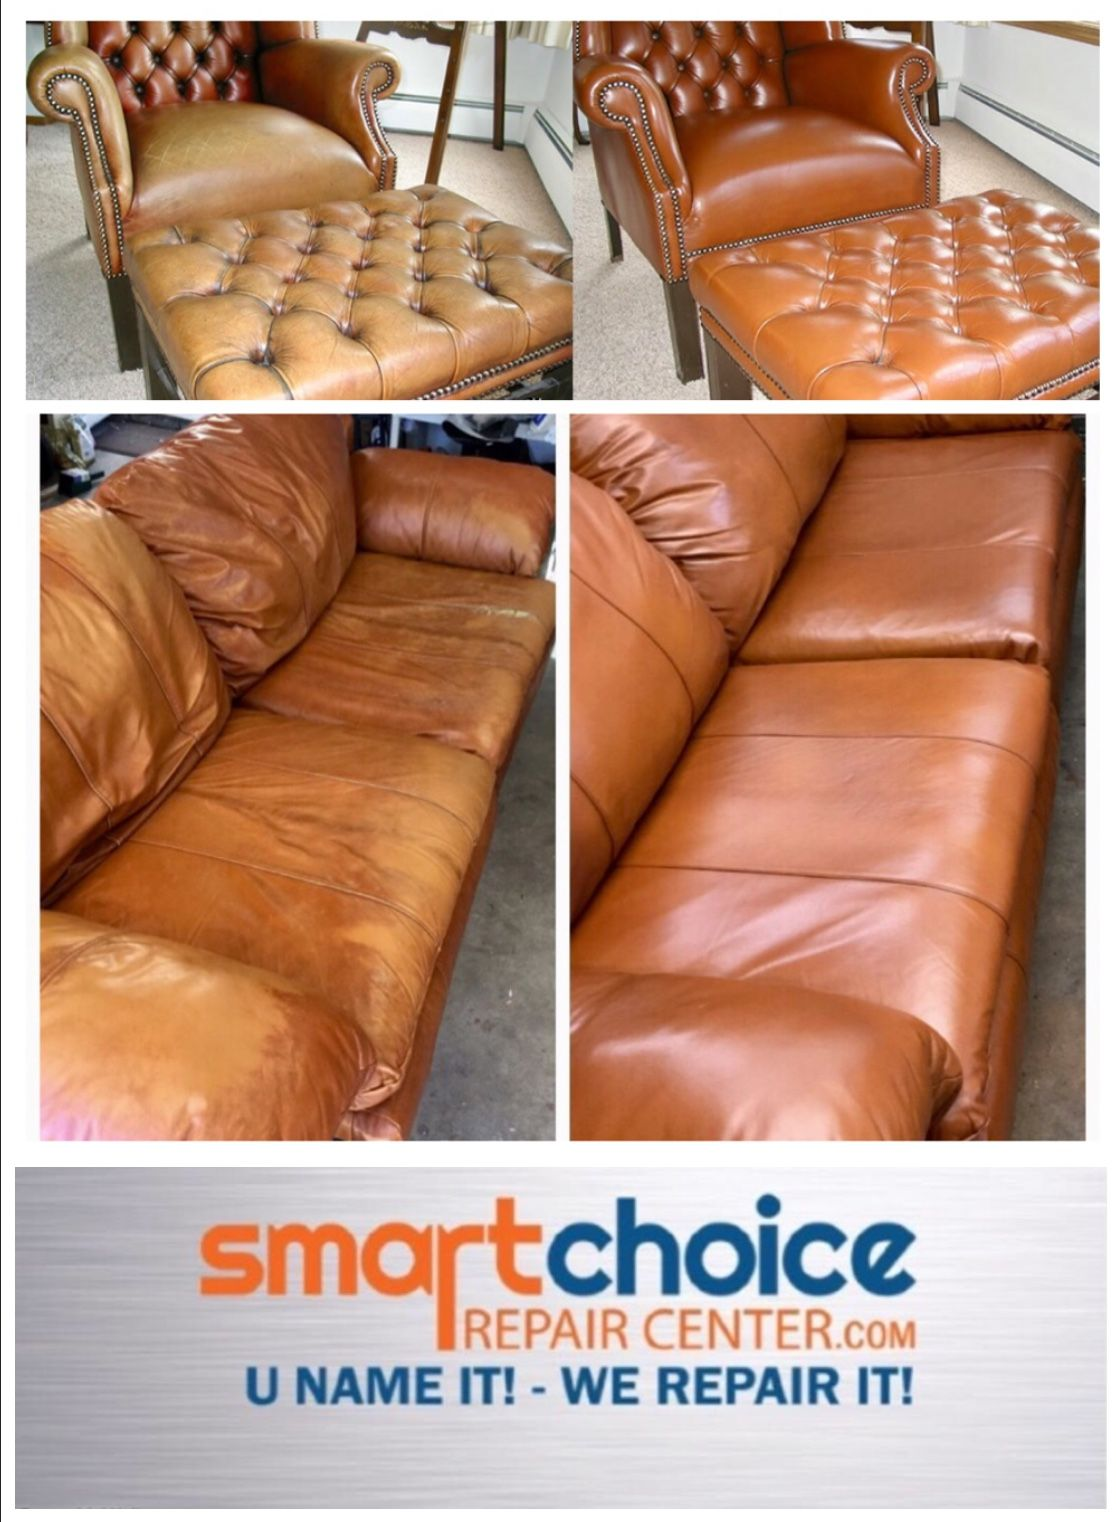 Smart Choice Repair Center Specializes In The Repair Of Residential Leather Furniture Sofas Couches Recliners